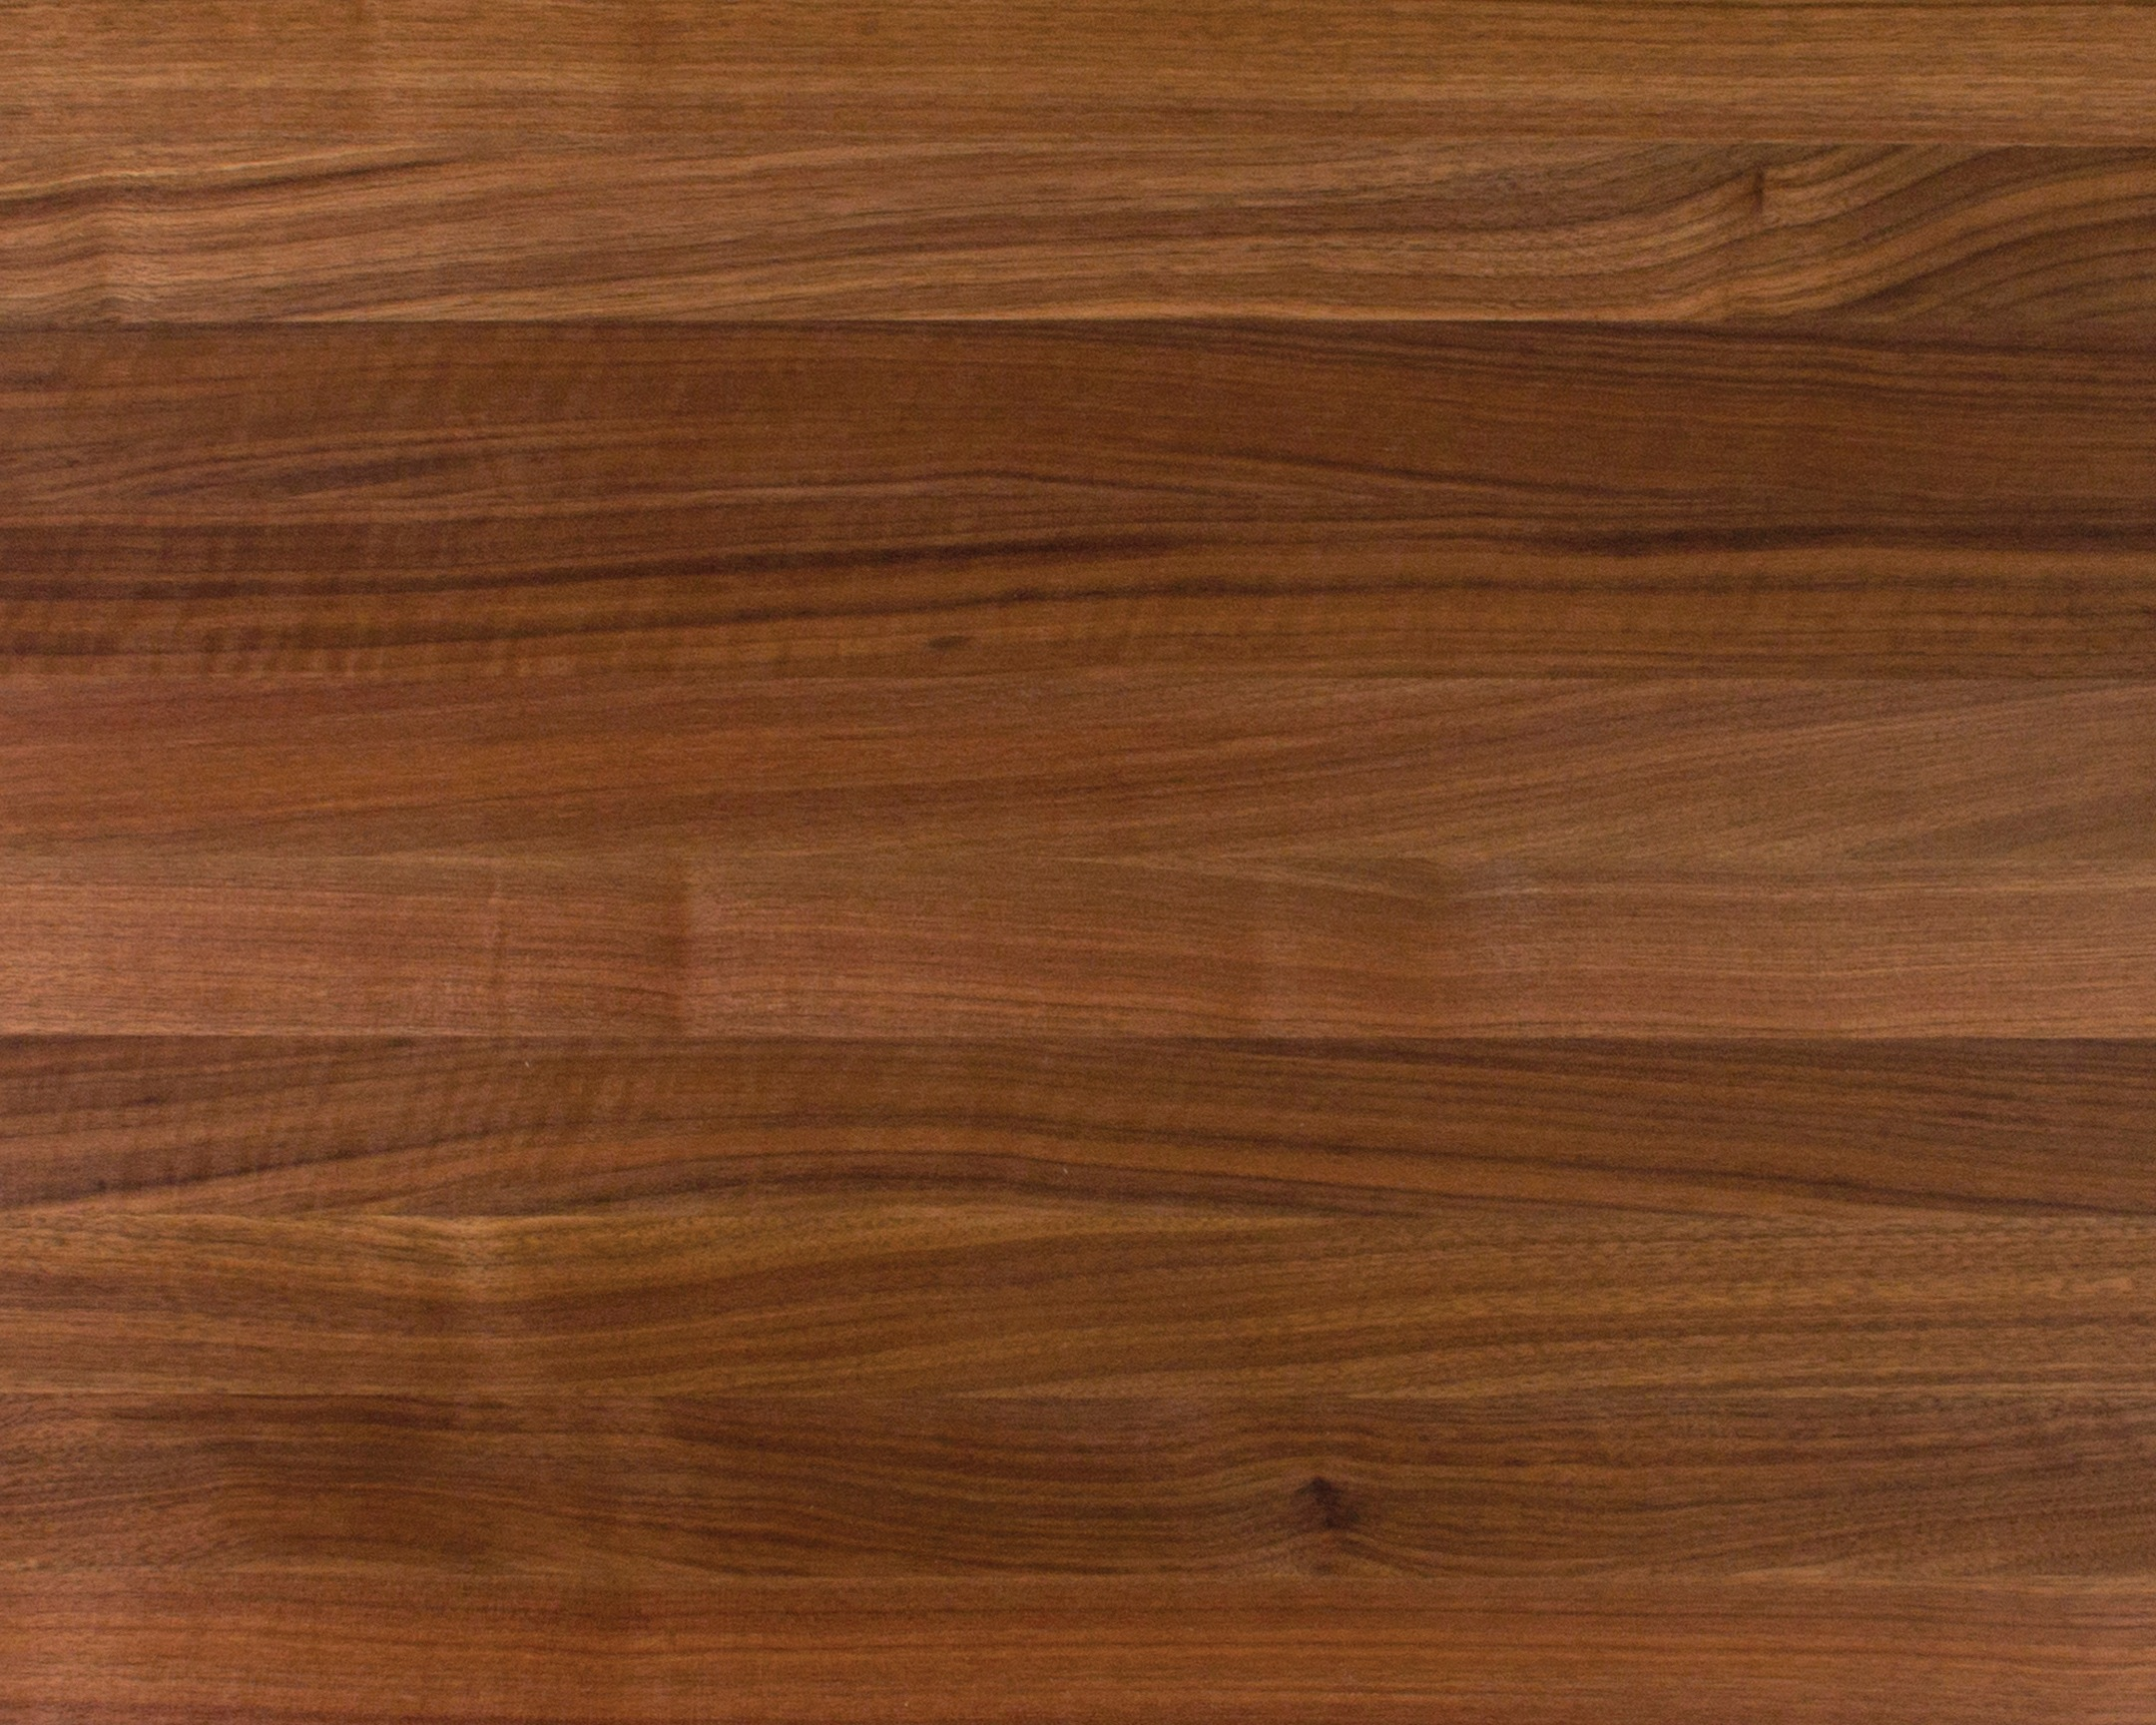 Best Wood Countertops Buy A Wood Countertop